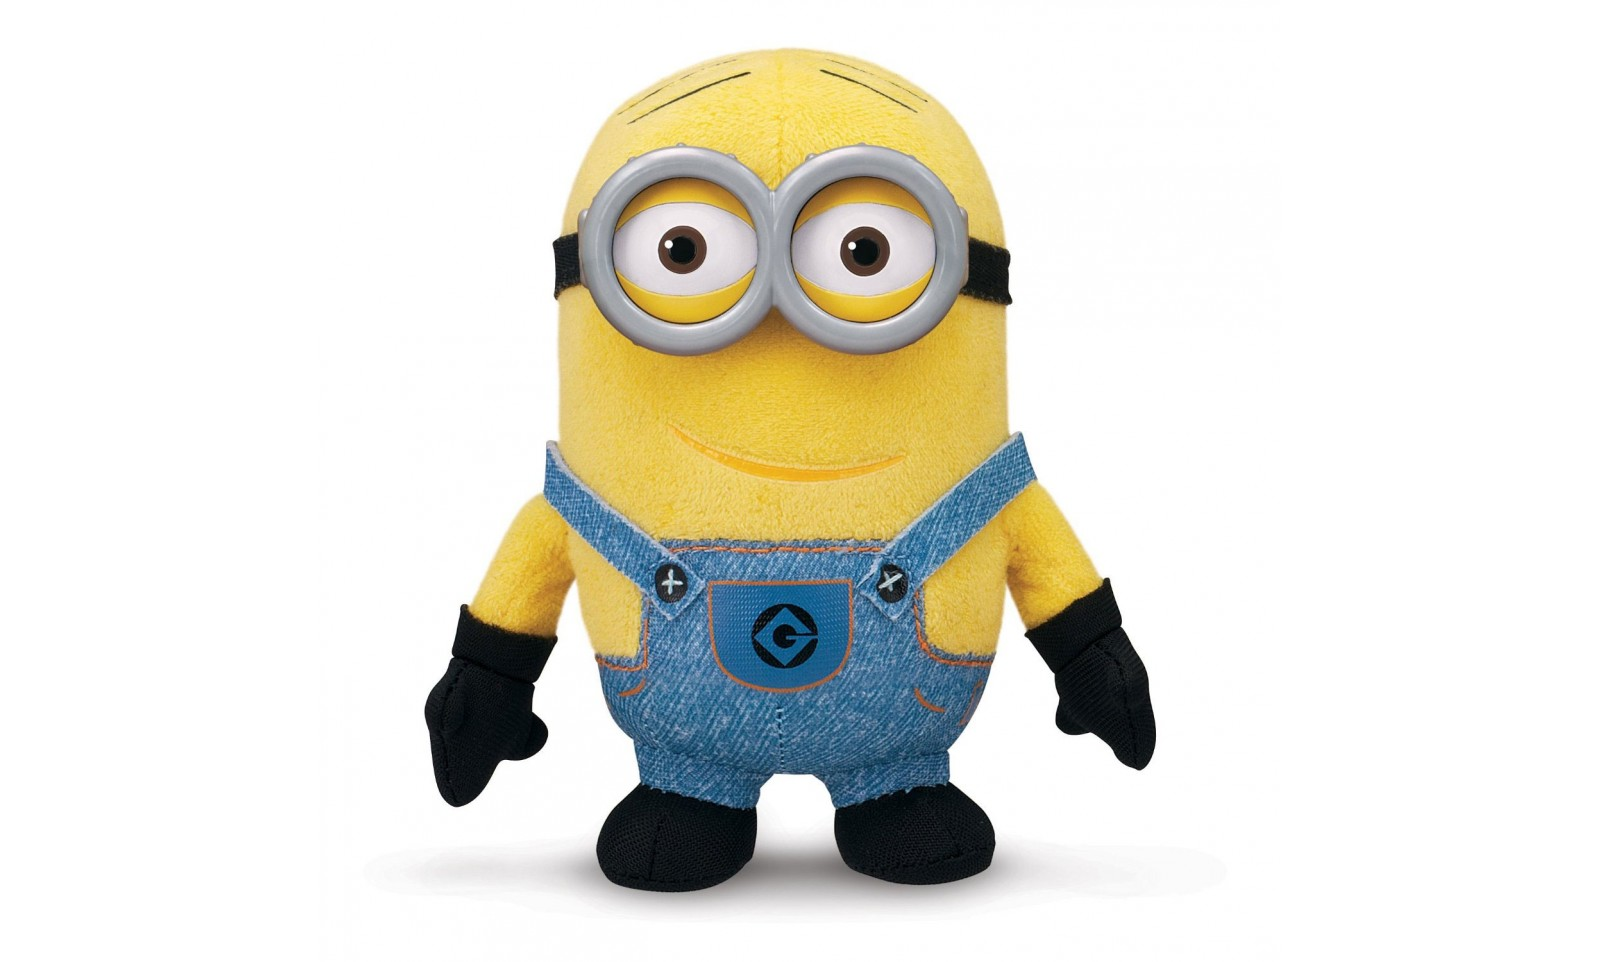 Moi moche et m chant peluche minion dave 15 cm film cin ma - Mechant minion ...